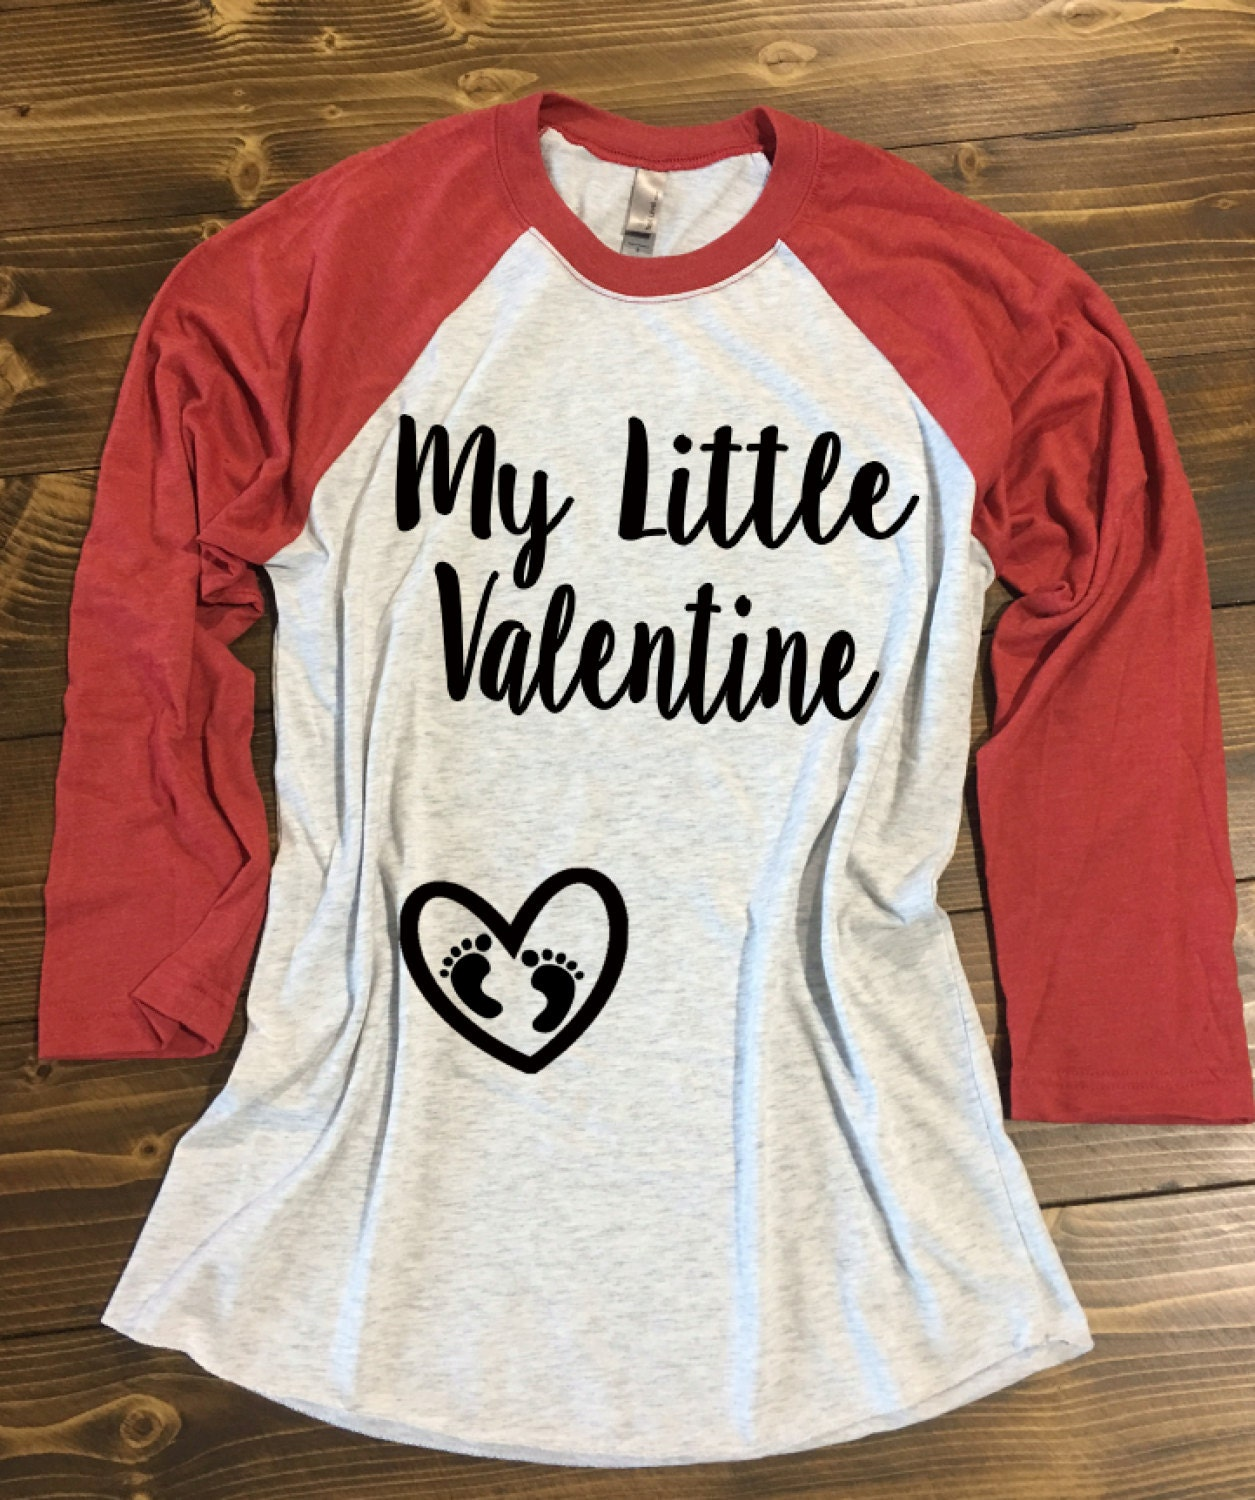 Valentines Shirts Images - Reverse Search